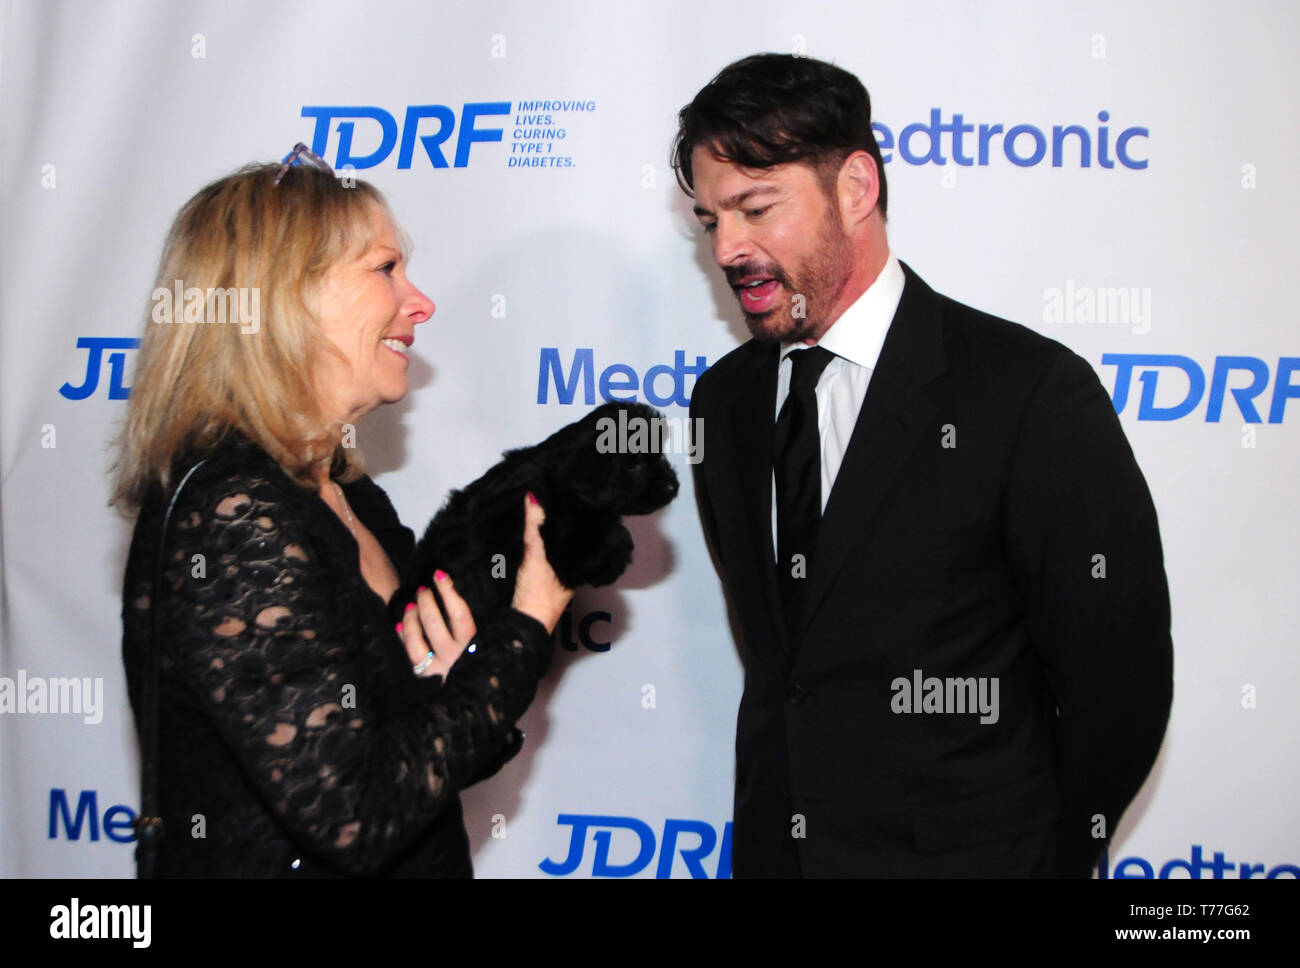 Beverly Hills, California, USA 4th May 2019  Publicist Cheri Warner, Puppy Olive and Singer Harry Connick Jr. attend JDRF Los Angeles Imagine Gala on May 4, 2019 at the Beverly Hilton Hotel in Beverly Hills, California, USA. Photo by Barry King/Alamy Live News - Stock Image